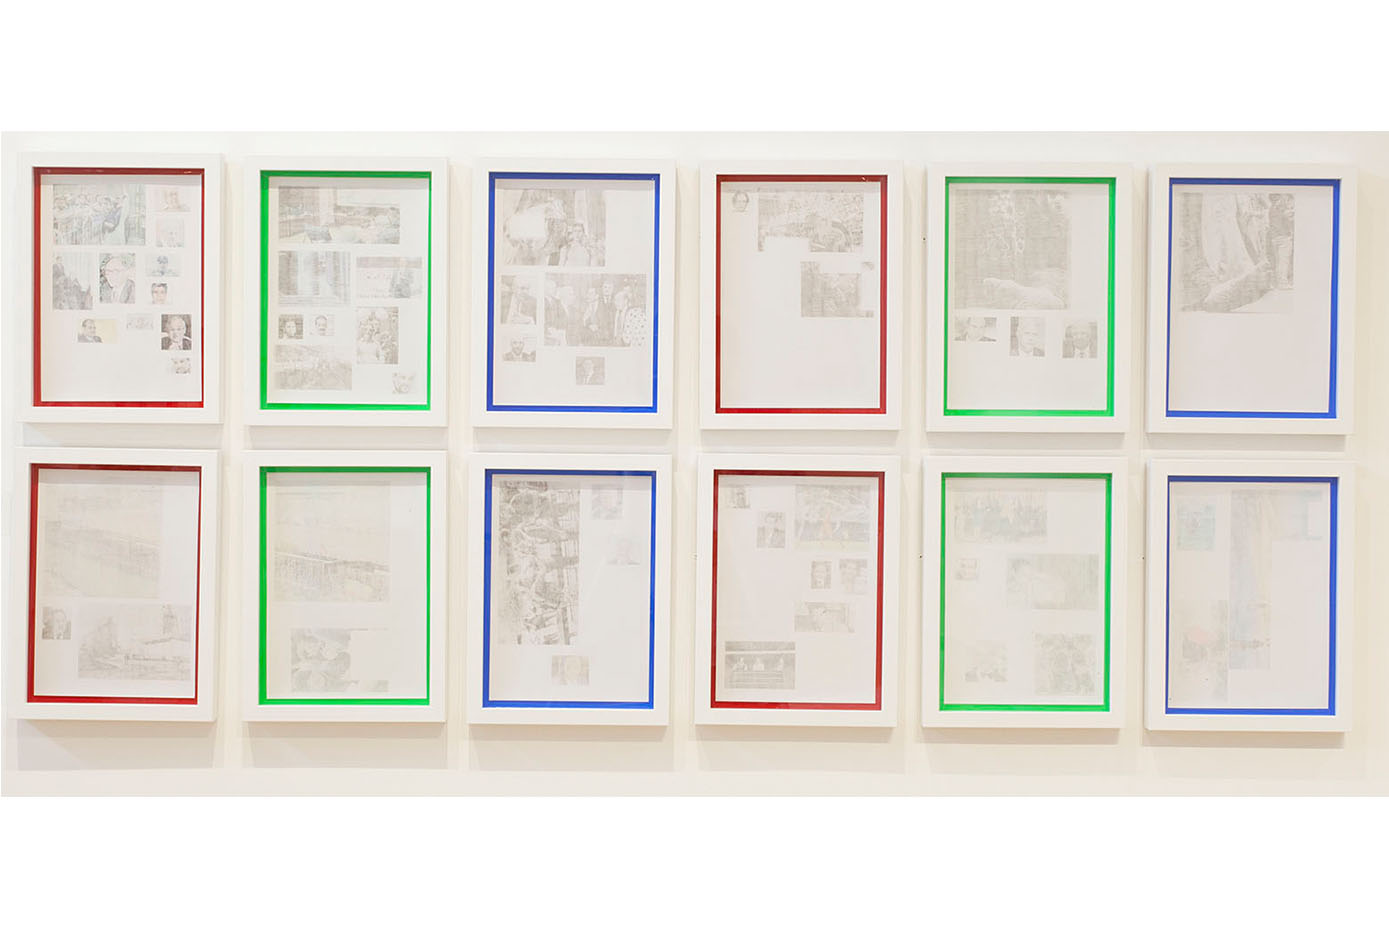 Taha Belal  Untitled (pictures backwards) , 2014 Newspaper ink transfer on inkjet photo paper |each panel: 11.5 x 8.5 inches /installed dimension: 29 x 68 x 1.5 inches | HG12538